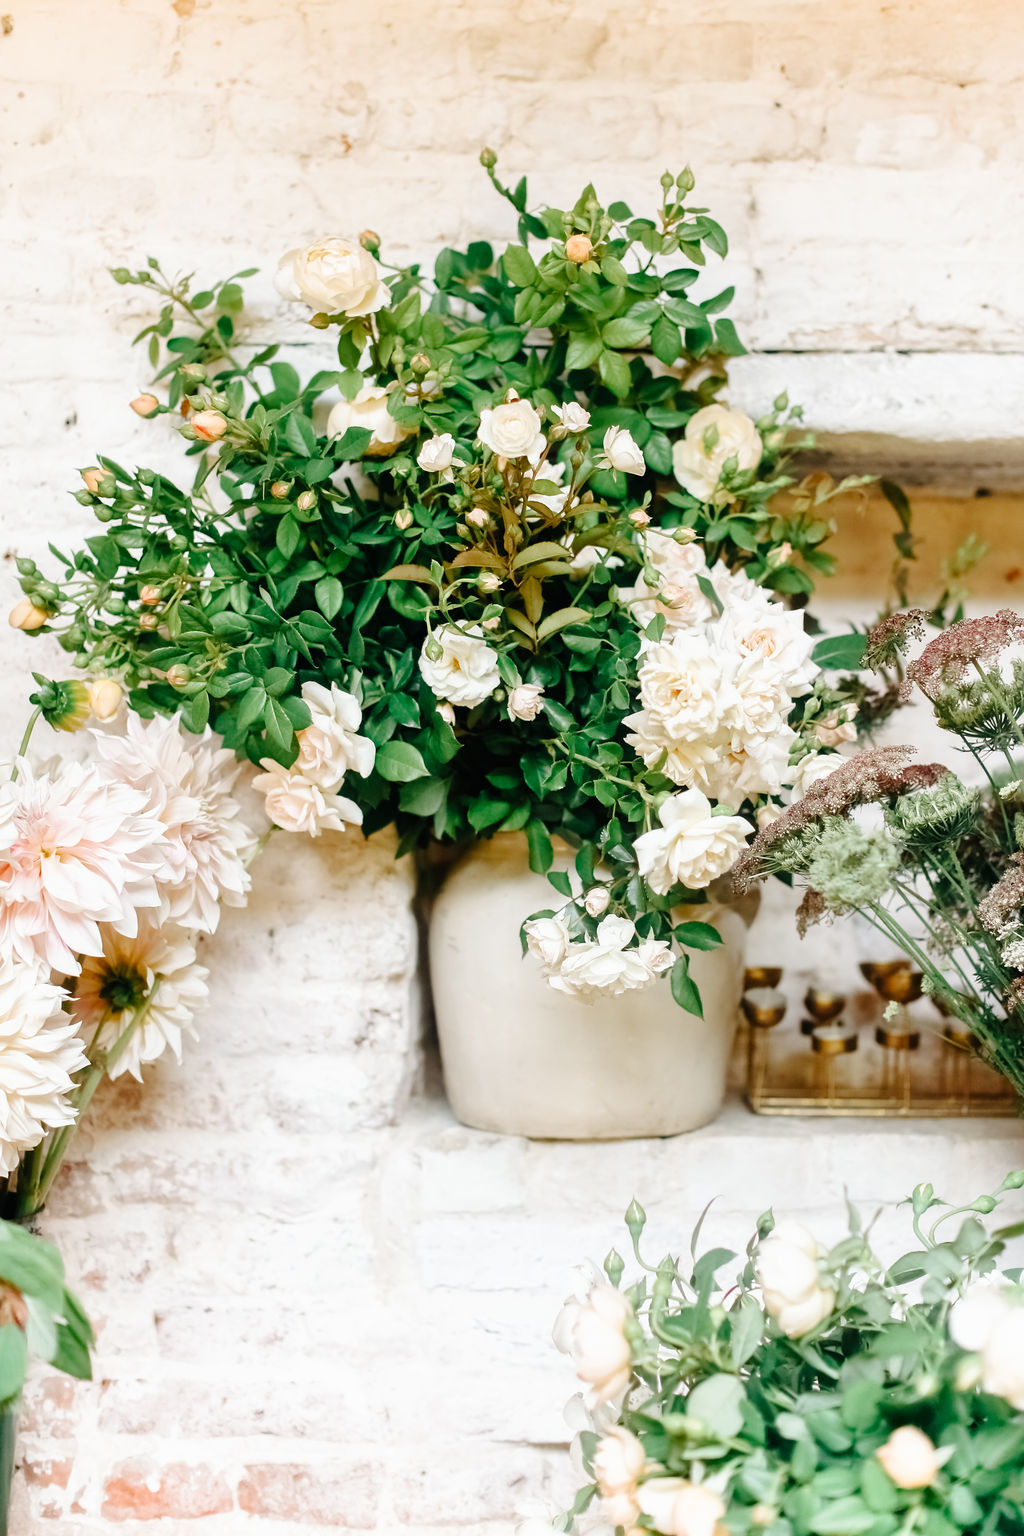 Locally grown roses and other flowers